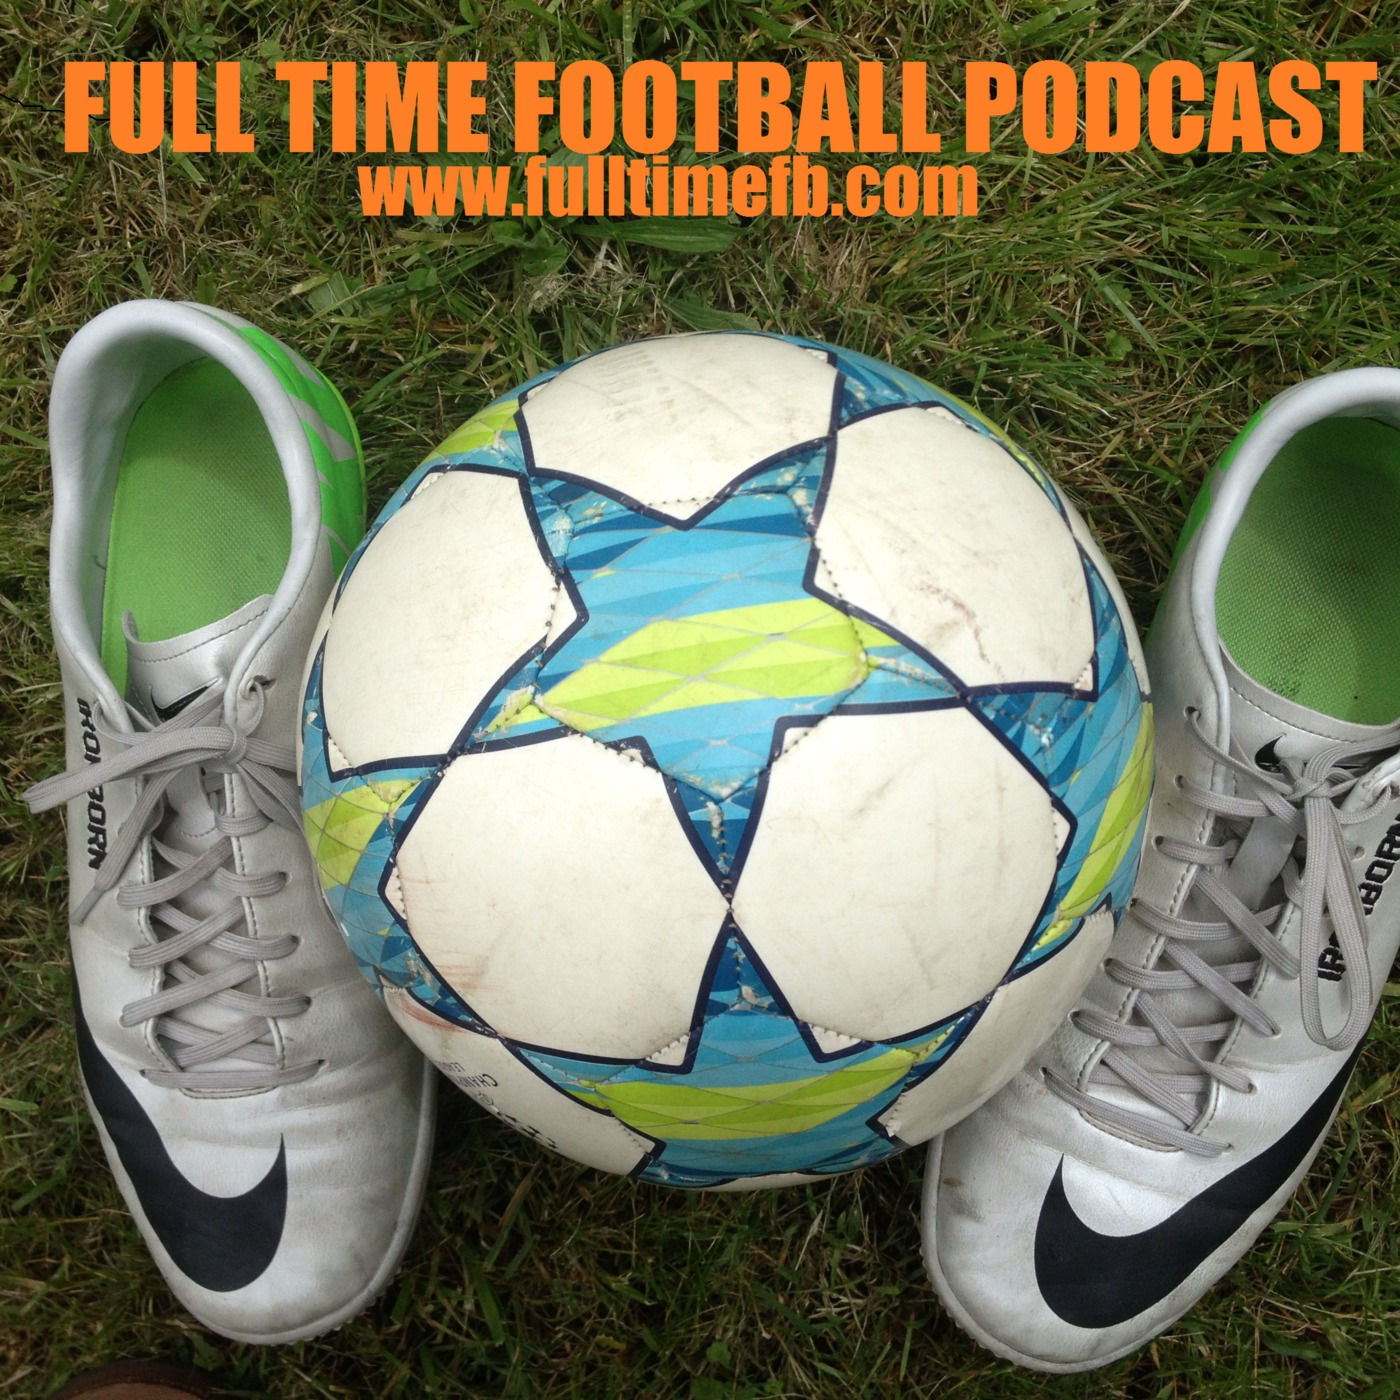 Full Time Football Podcast